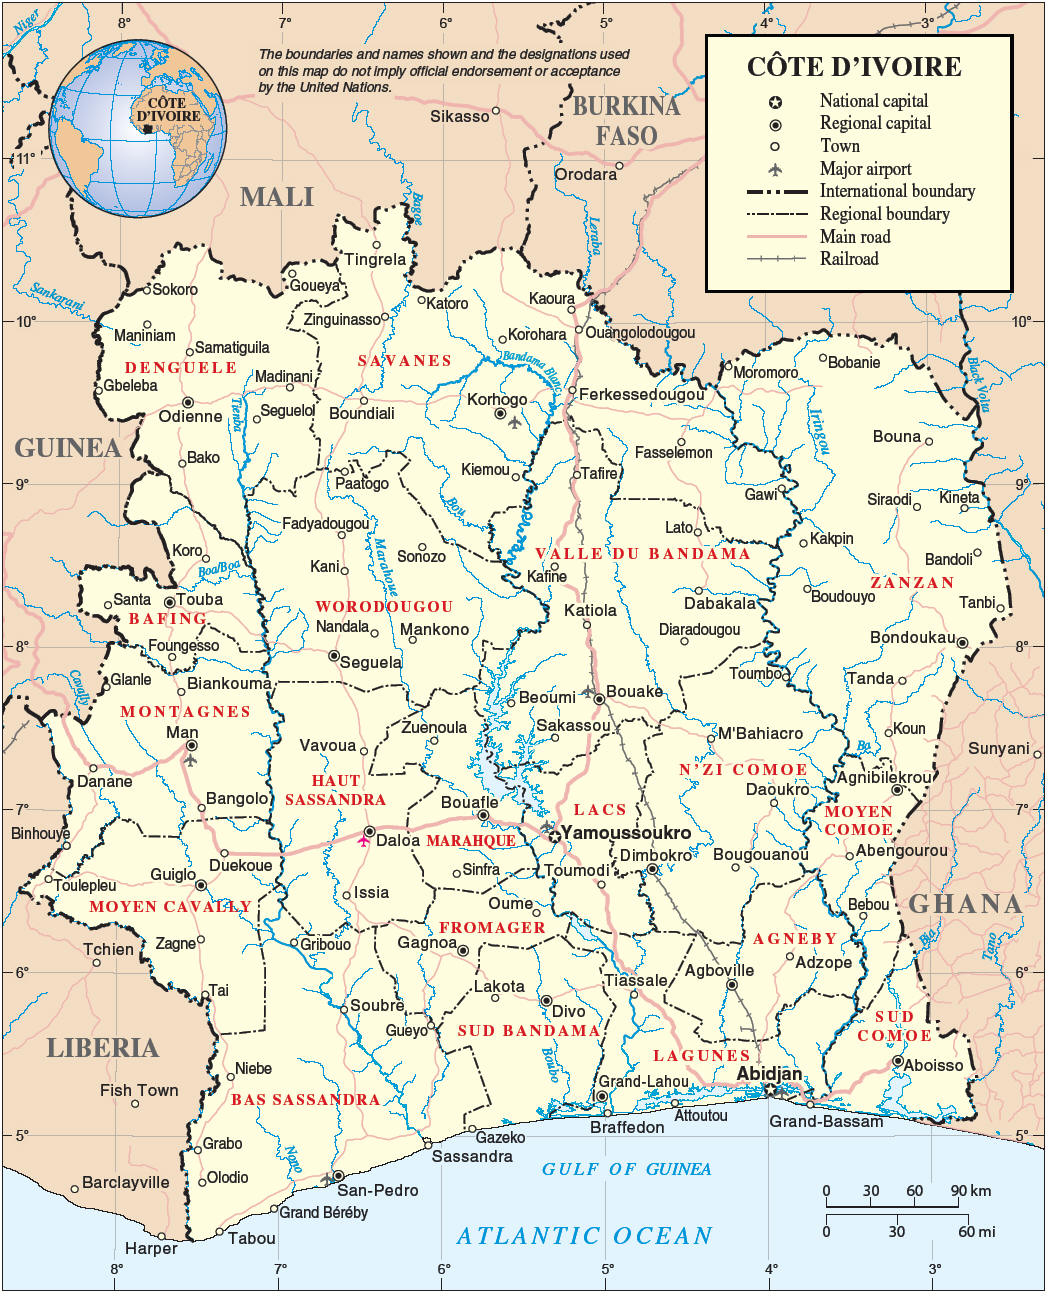 Maps of Cote d'Ivoire | Map Liry | Maps of the World Yamoussoukro Cote D Ivoire Map on abobo cote d'ivoire map, tripoli libya map, abidjan cote d'ivoire map, africa cote d'ivoire map, kigali rwanda map, ivory coast map, cote d'ivoire capital on map,